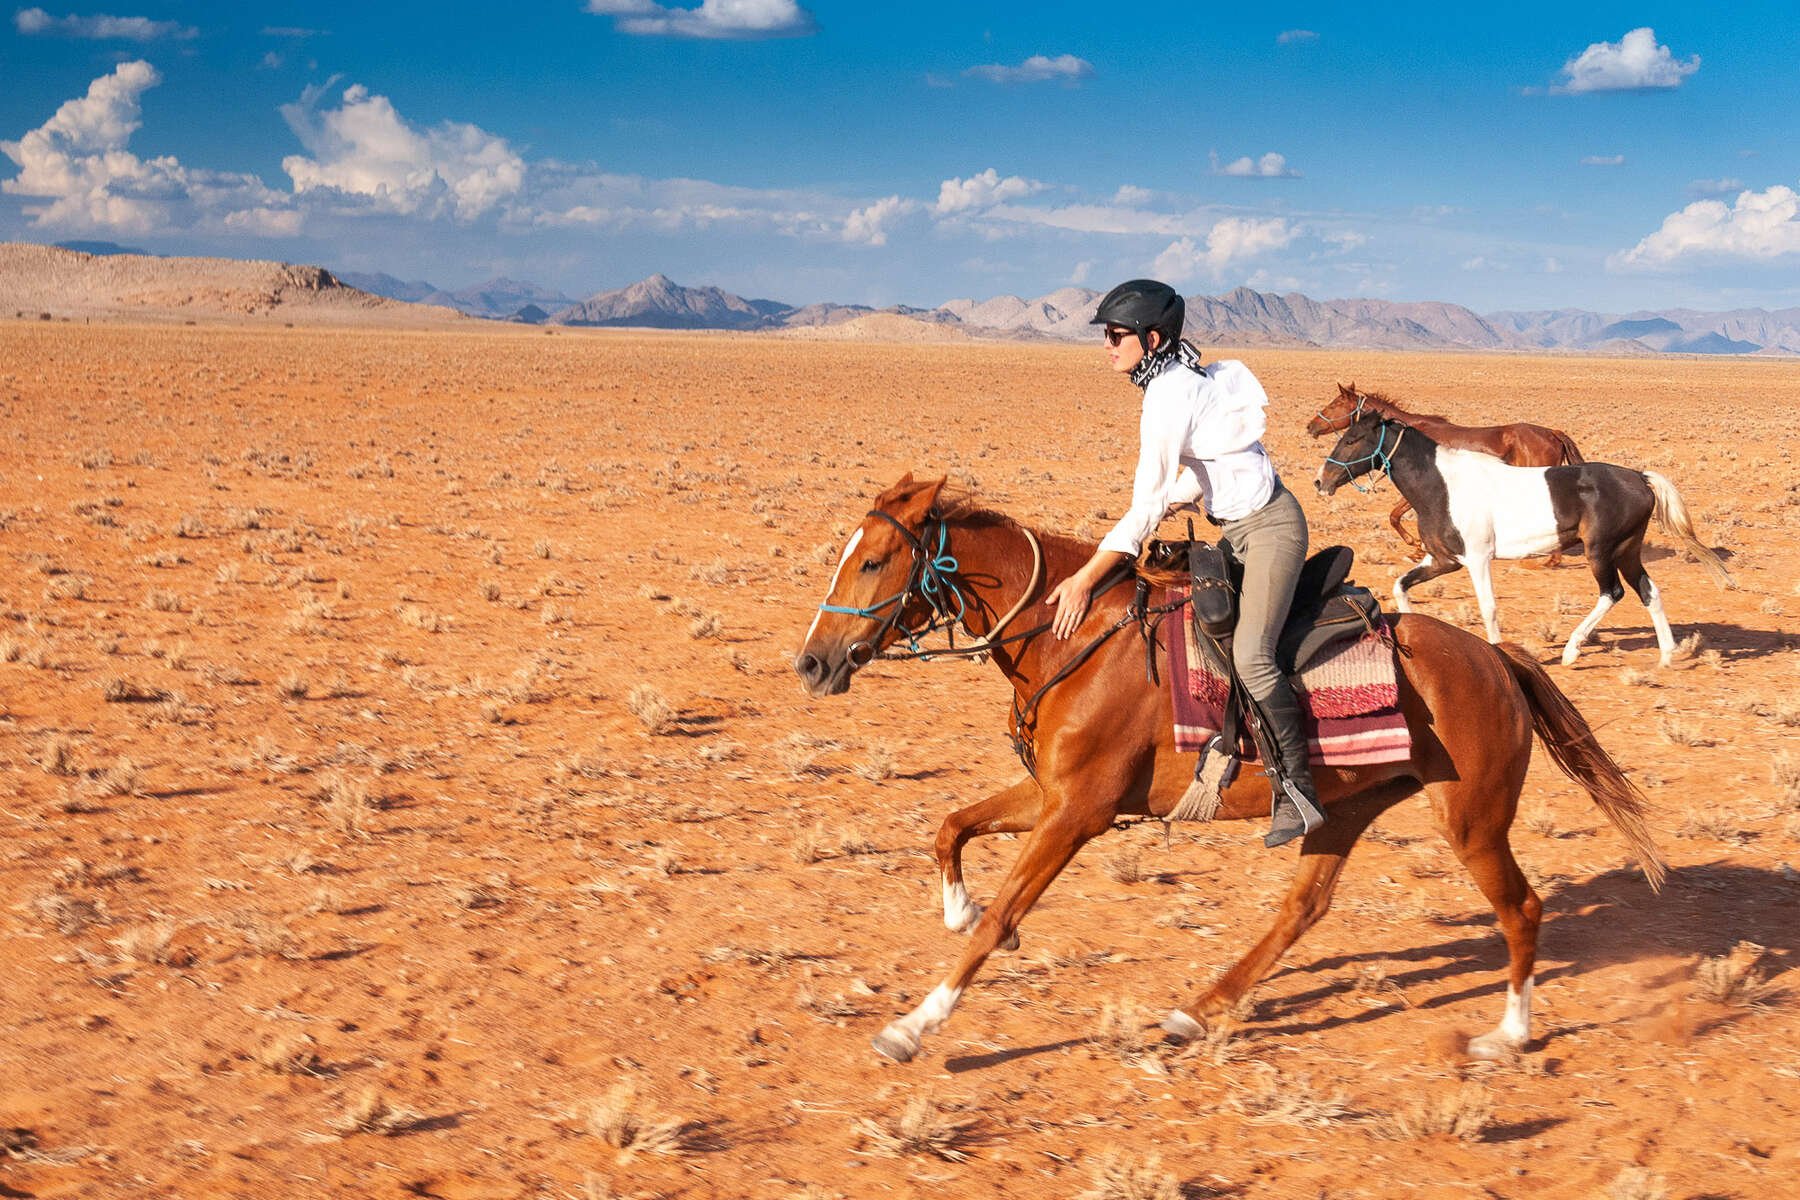 Cantering horse on an adventurous trail riding holiday